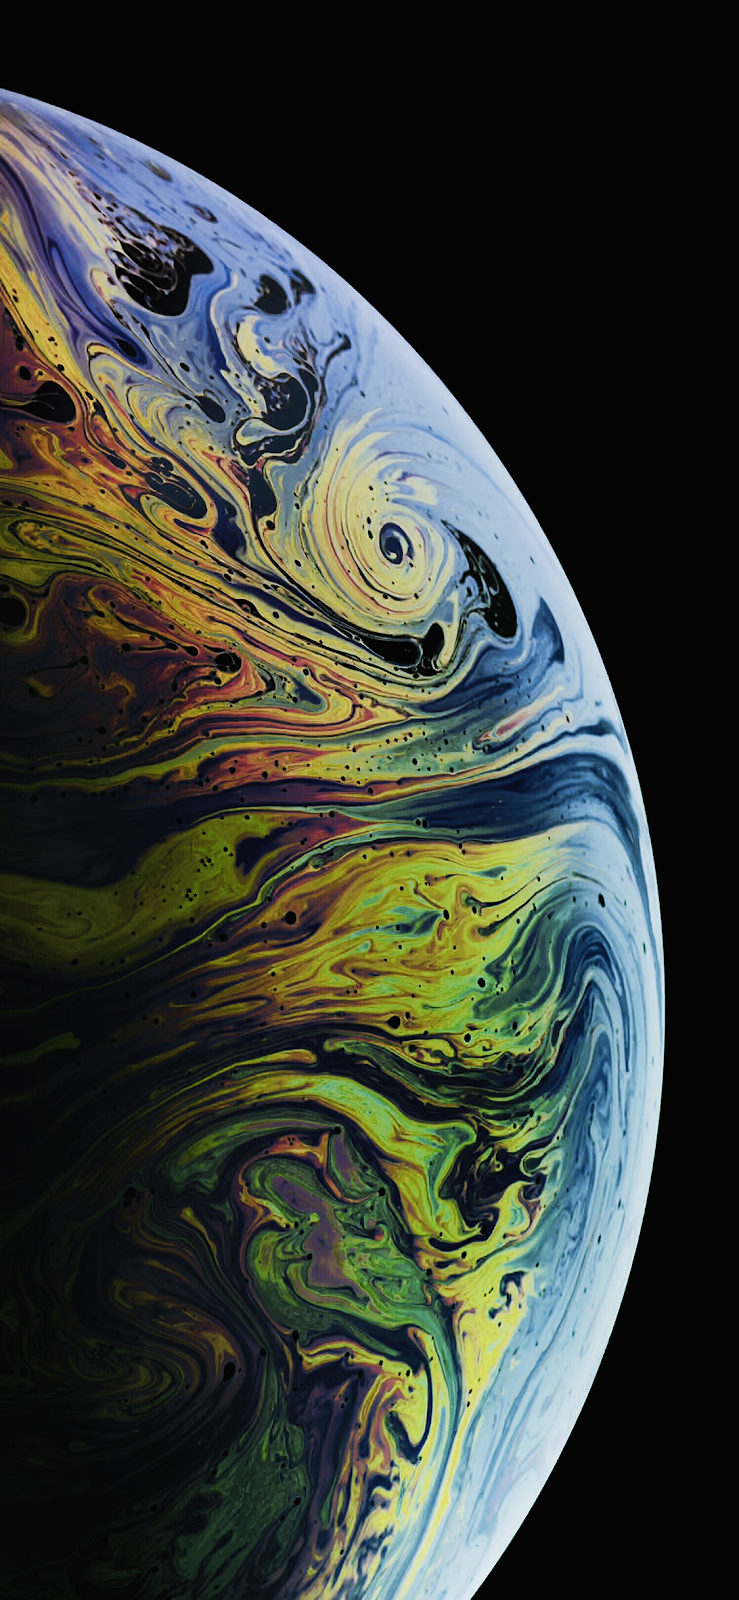 Iphone Xs Max Earth Wallpapers Fundaluri Fundaluri Telefon